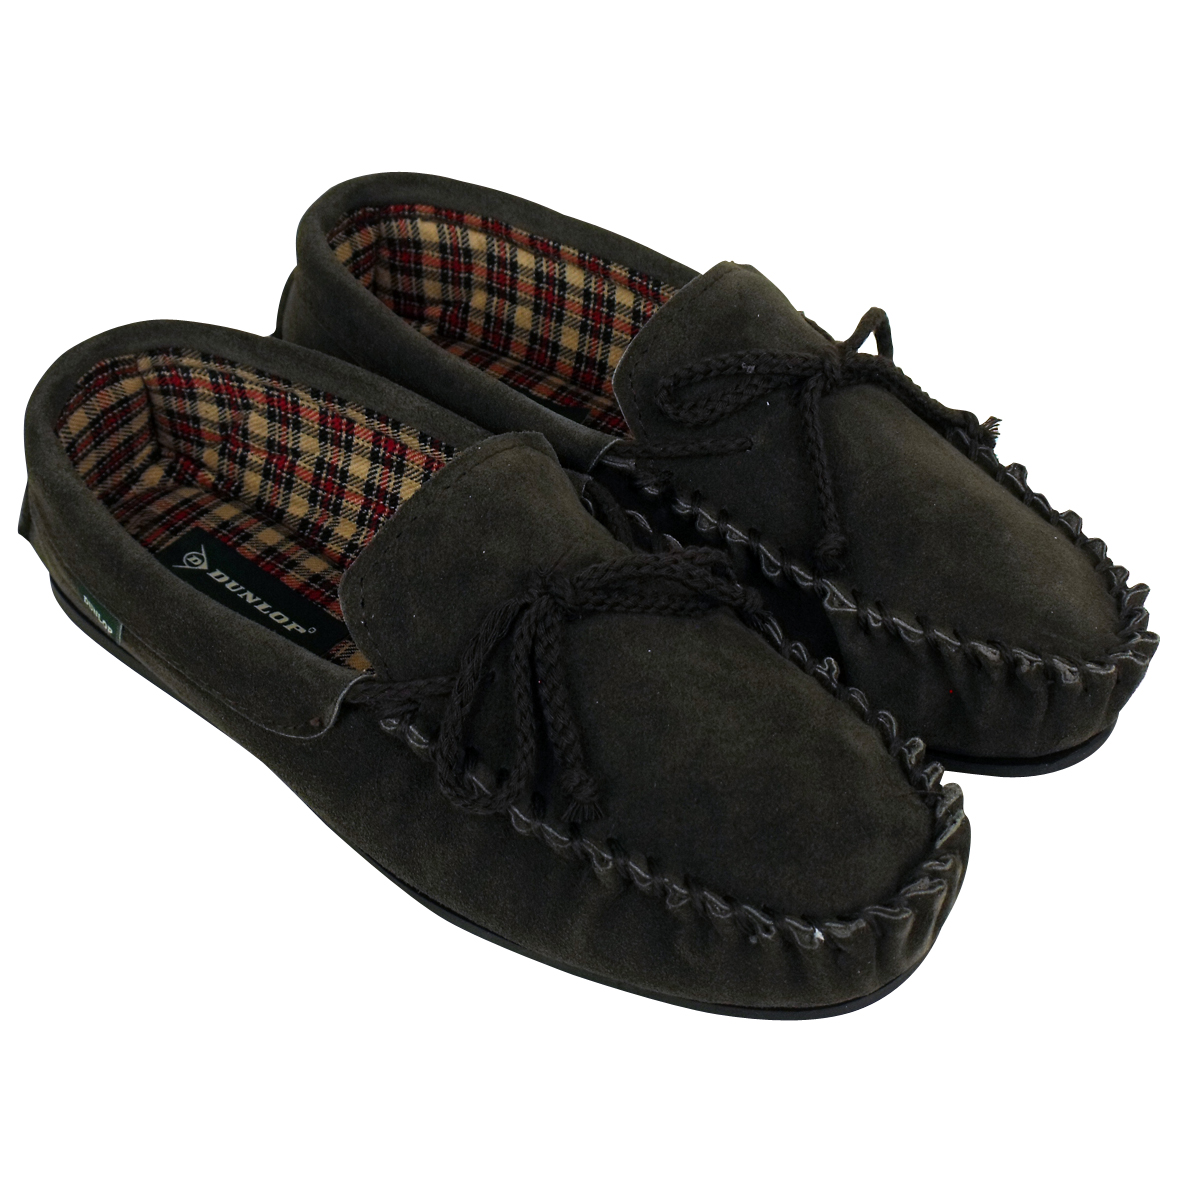 mens slippers moccasin style photo - 1